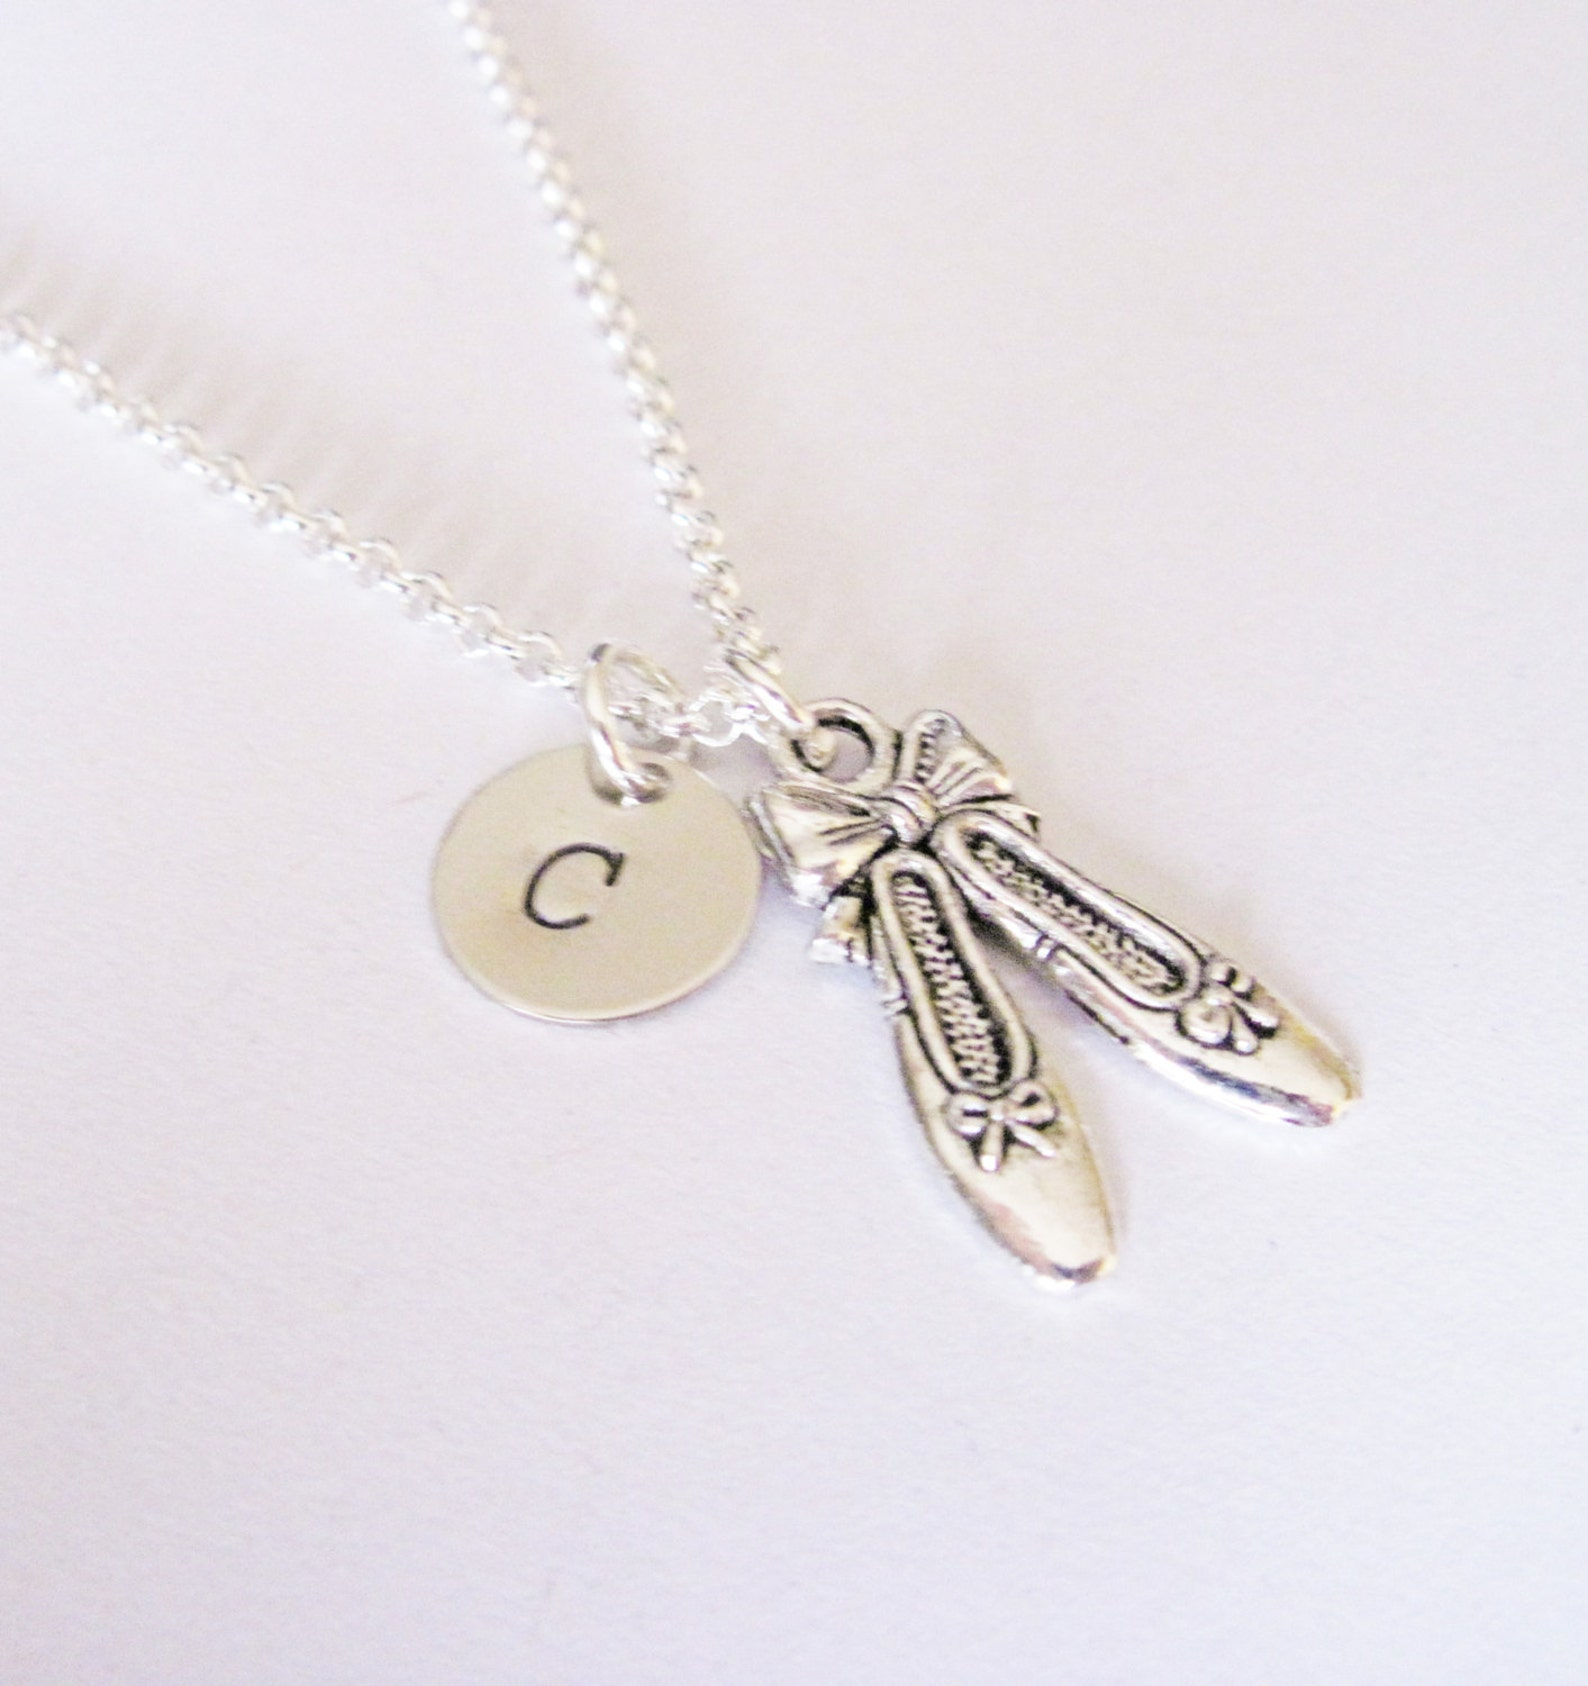 ballet shoes necklace, ballet slippers, initial necklace, initial hand stamped, personalized, antique silver, monogram, ballerin